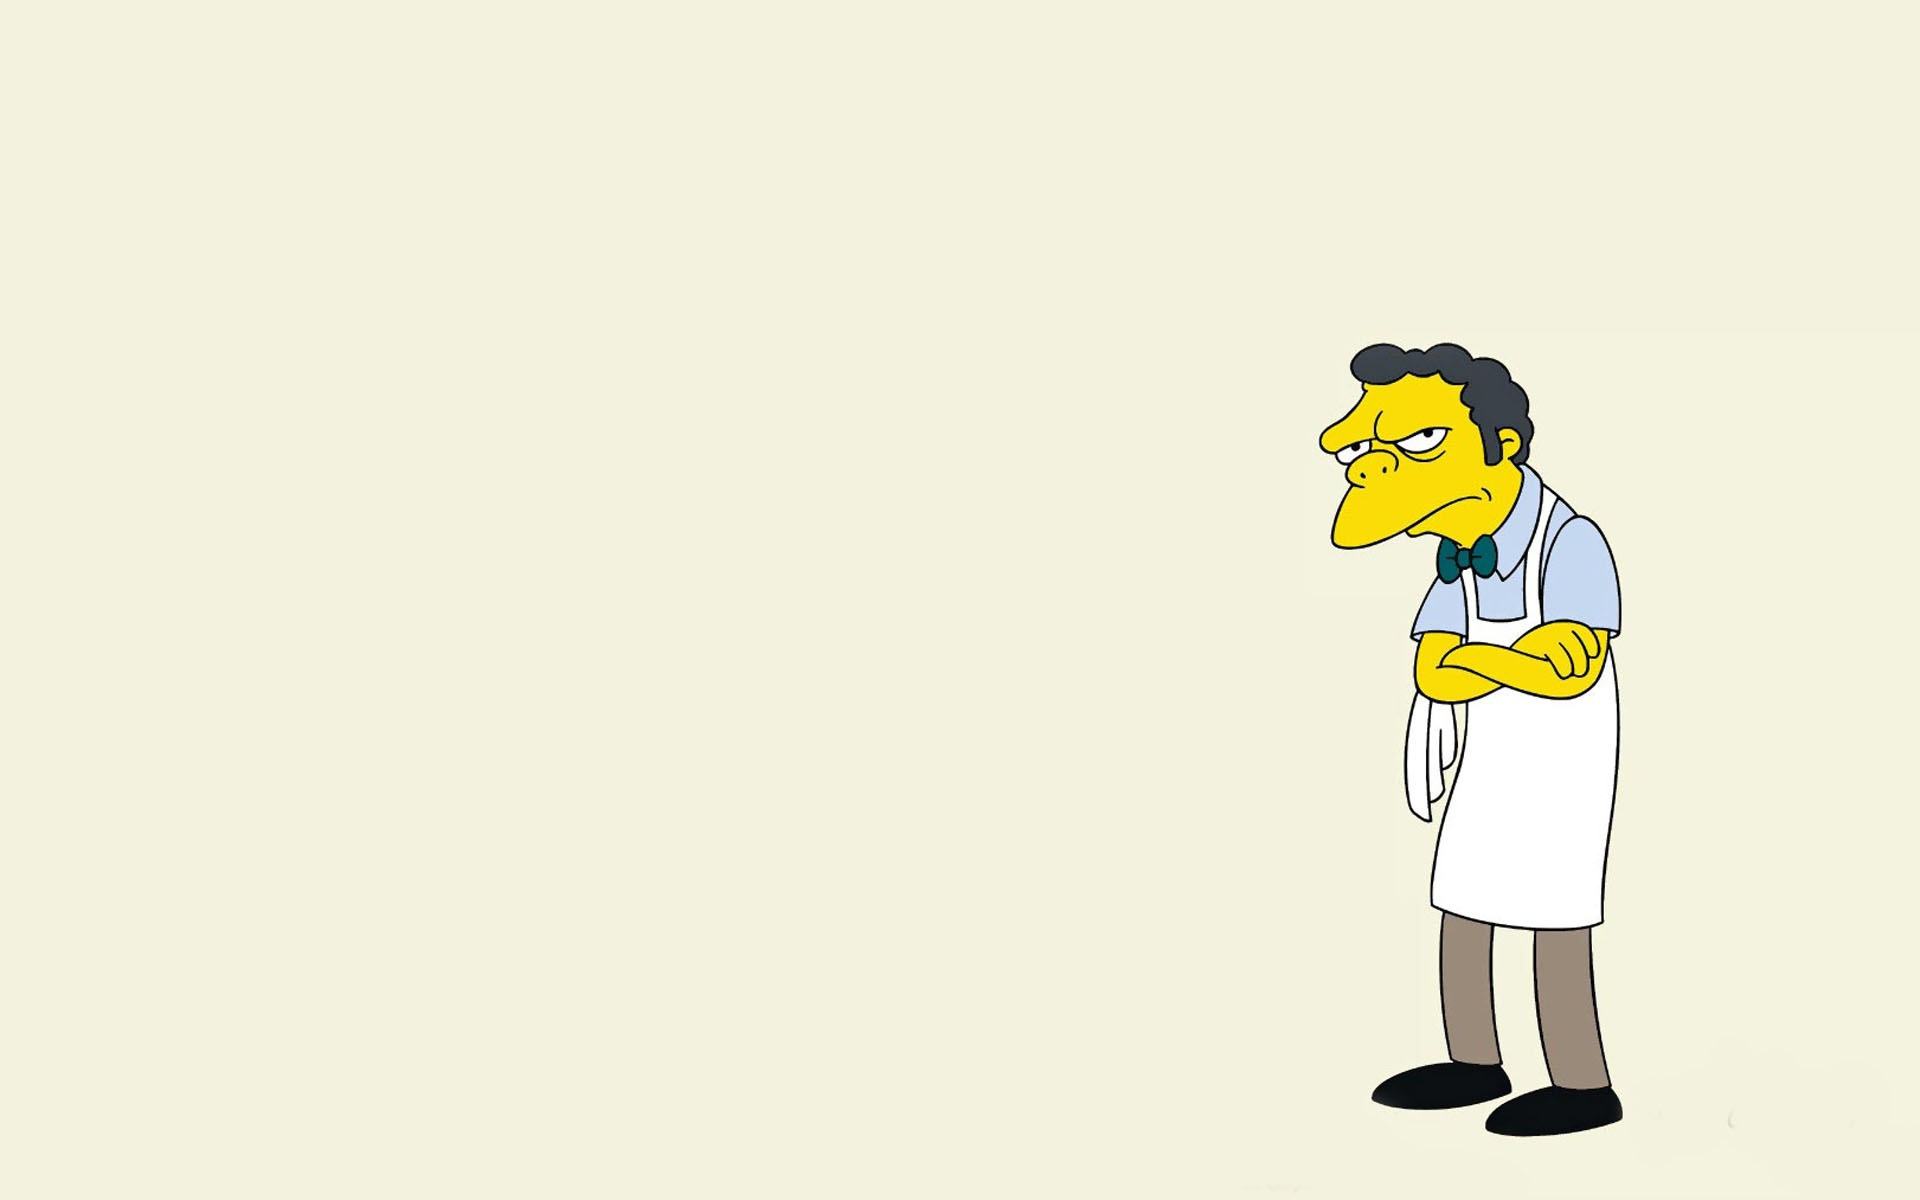 Simpsons Cartoon Design Free Ppt Backgrounds For Your Powerpoint Templates